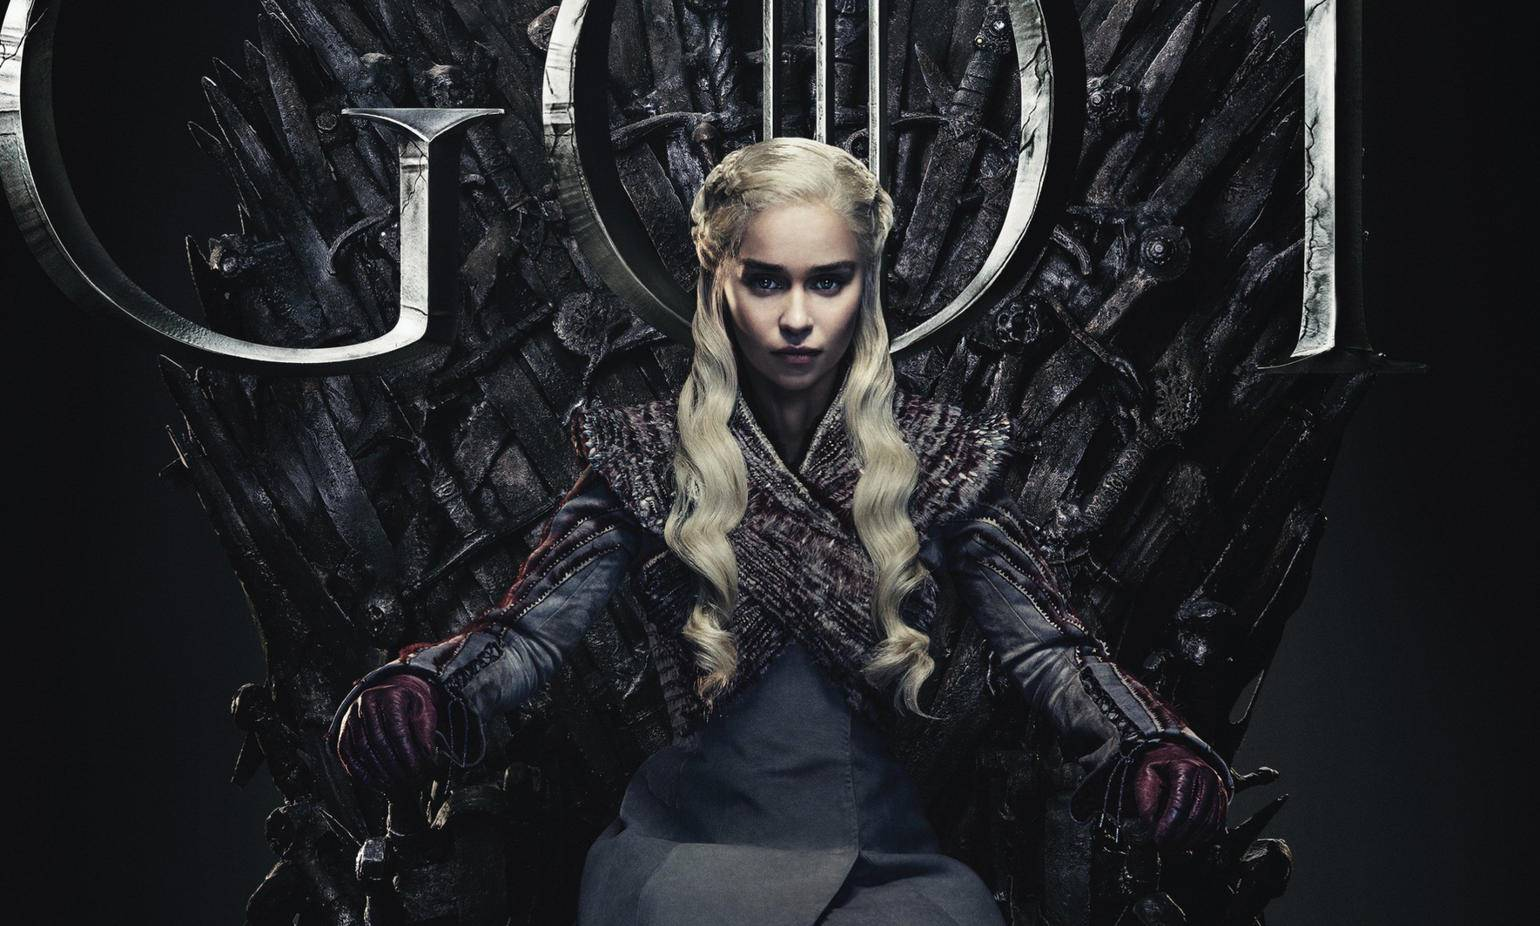 Game of Thrones greseala hbo